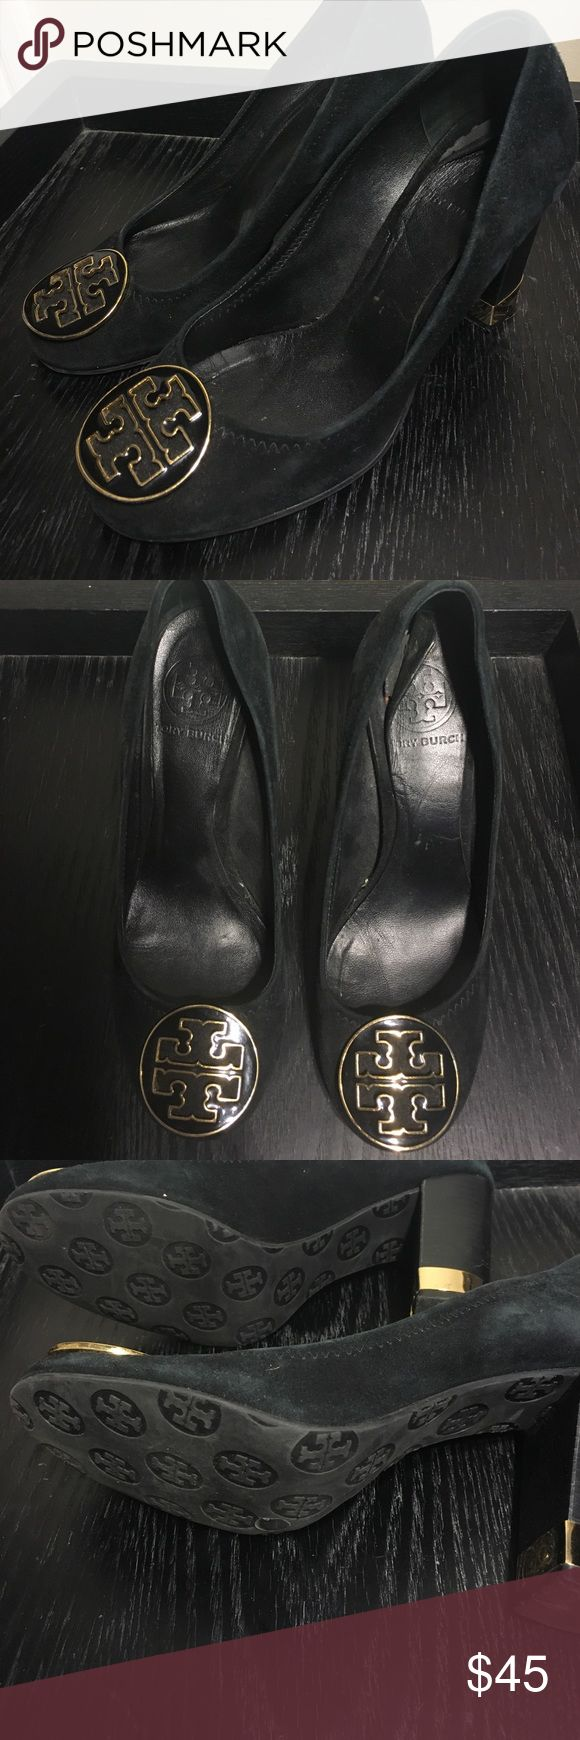 Designer Pump Classic Tory Burch wooden stacked heel pump. Black Suede. Black and gold enamel Tory Burch emblems. Condition- shoes show wear/ fading on parts of the Black suede but the overall shoe is still sturdy. The inside padding would need to be replaced or covered with a shoe insert because it is creased and peeling off. Comfortable work pump, brunch with the girls or for going out! Wear with a smart pencil skirt, jeans or dress! Tory Burch Shoes Heels